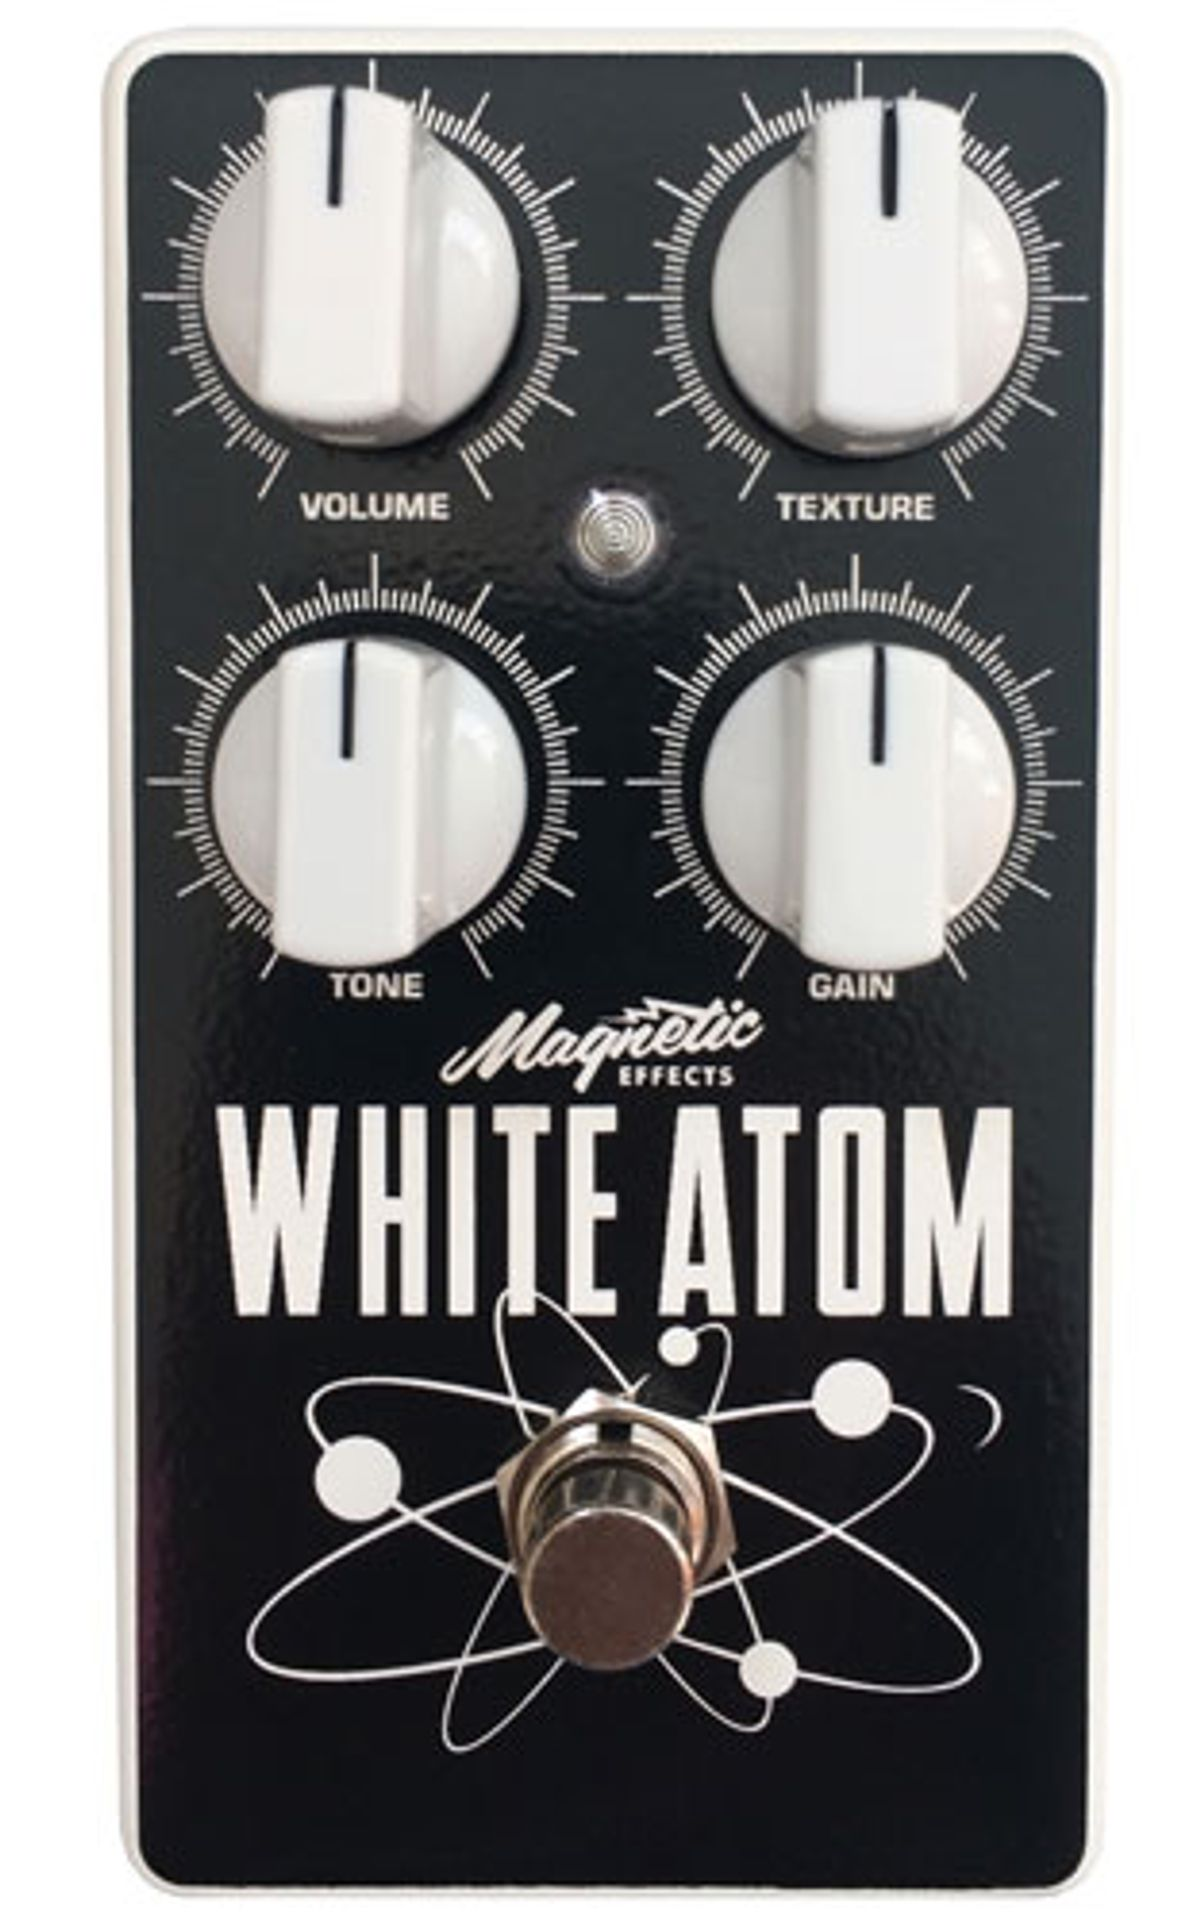 Magnetic Effects Unveils the White Atom MKII